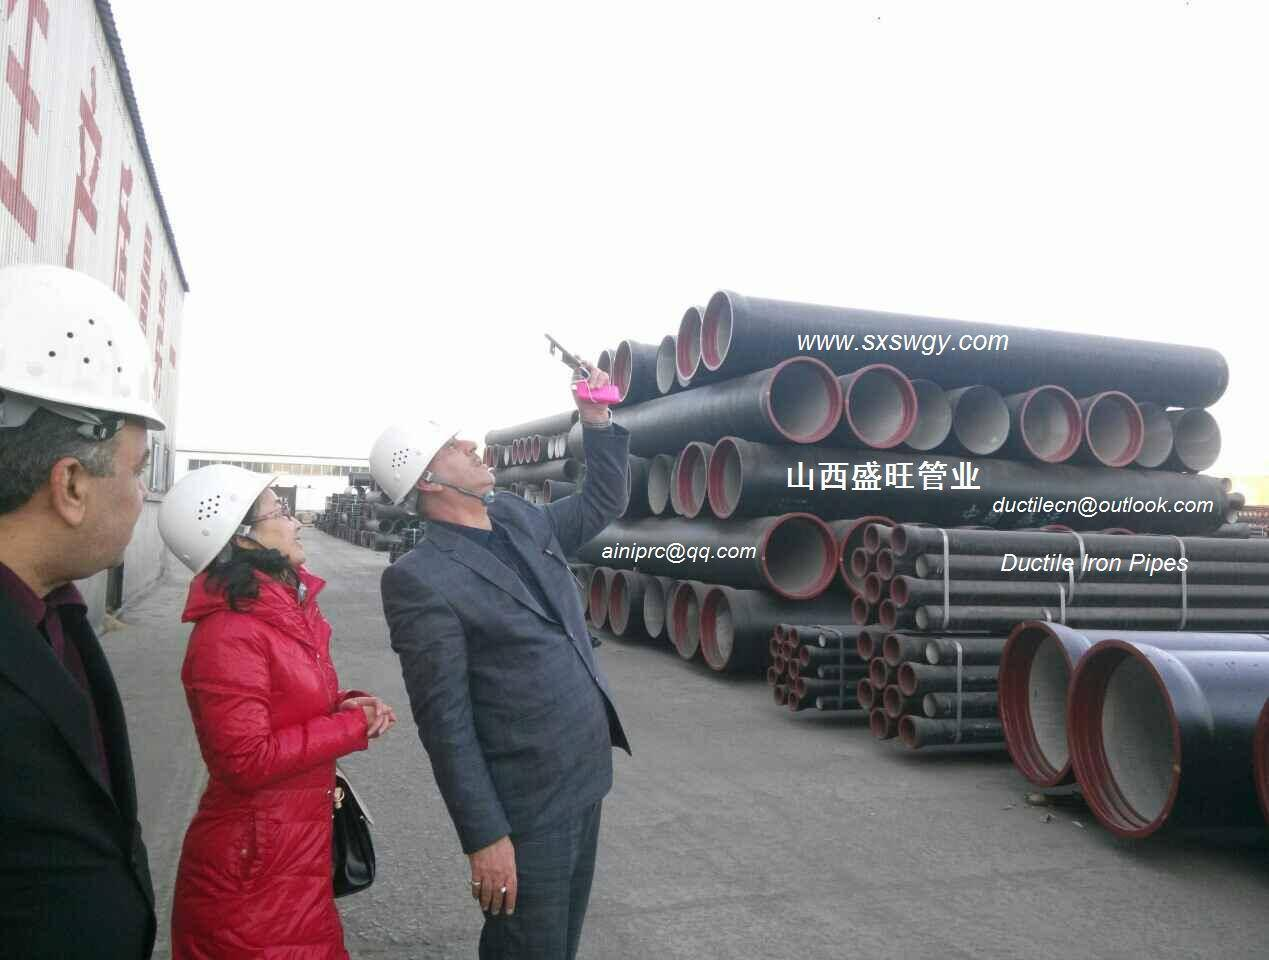 Ductile Iron Pipe Manufacturer in China